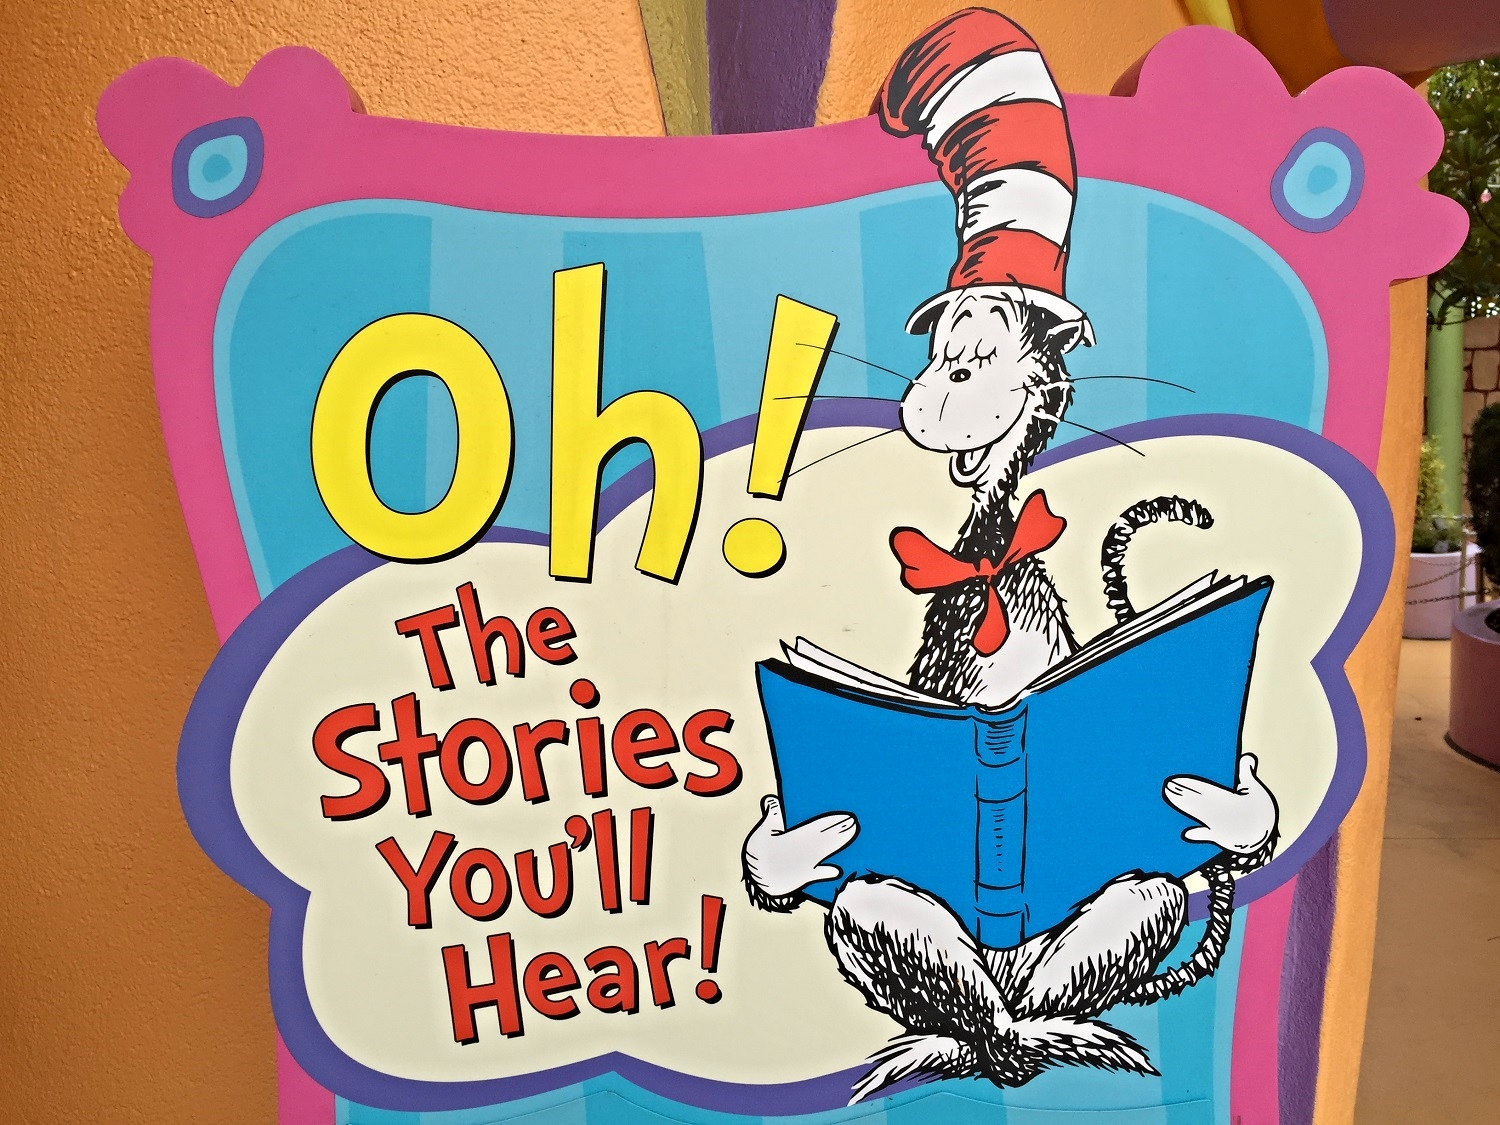 Oh!The Stories You'll Hear is a Seuss themed show that features a Dr. Seuss story (The Lorax) and a musical performance from a group of well-known Seuss characters.